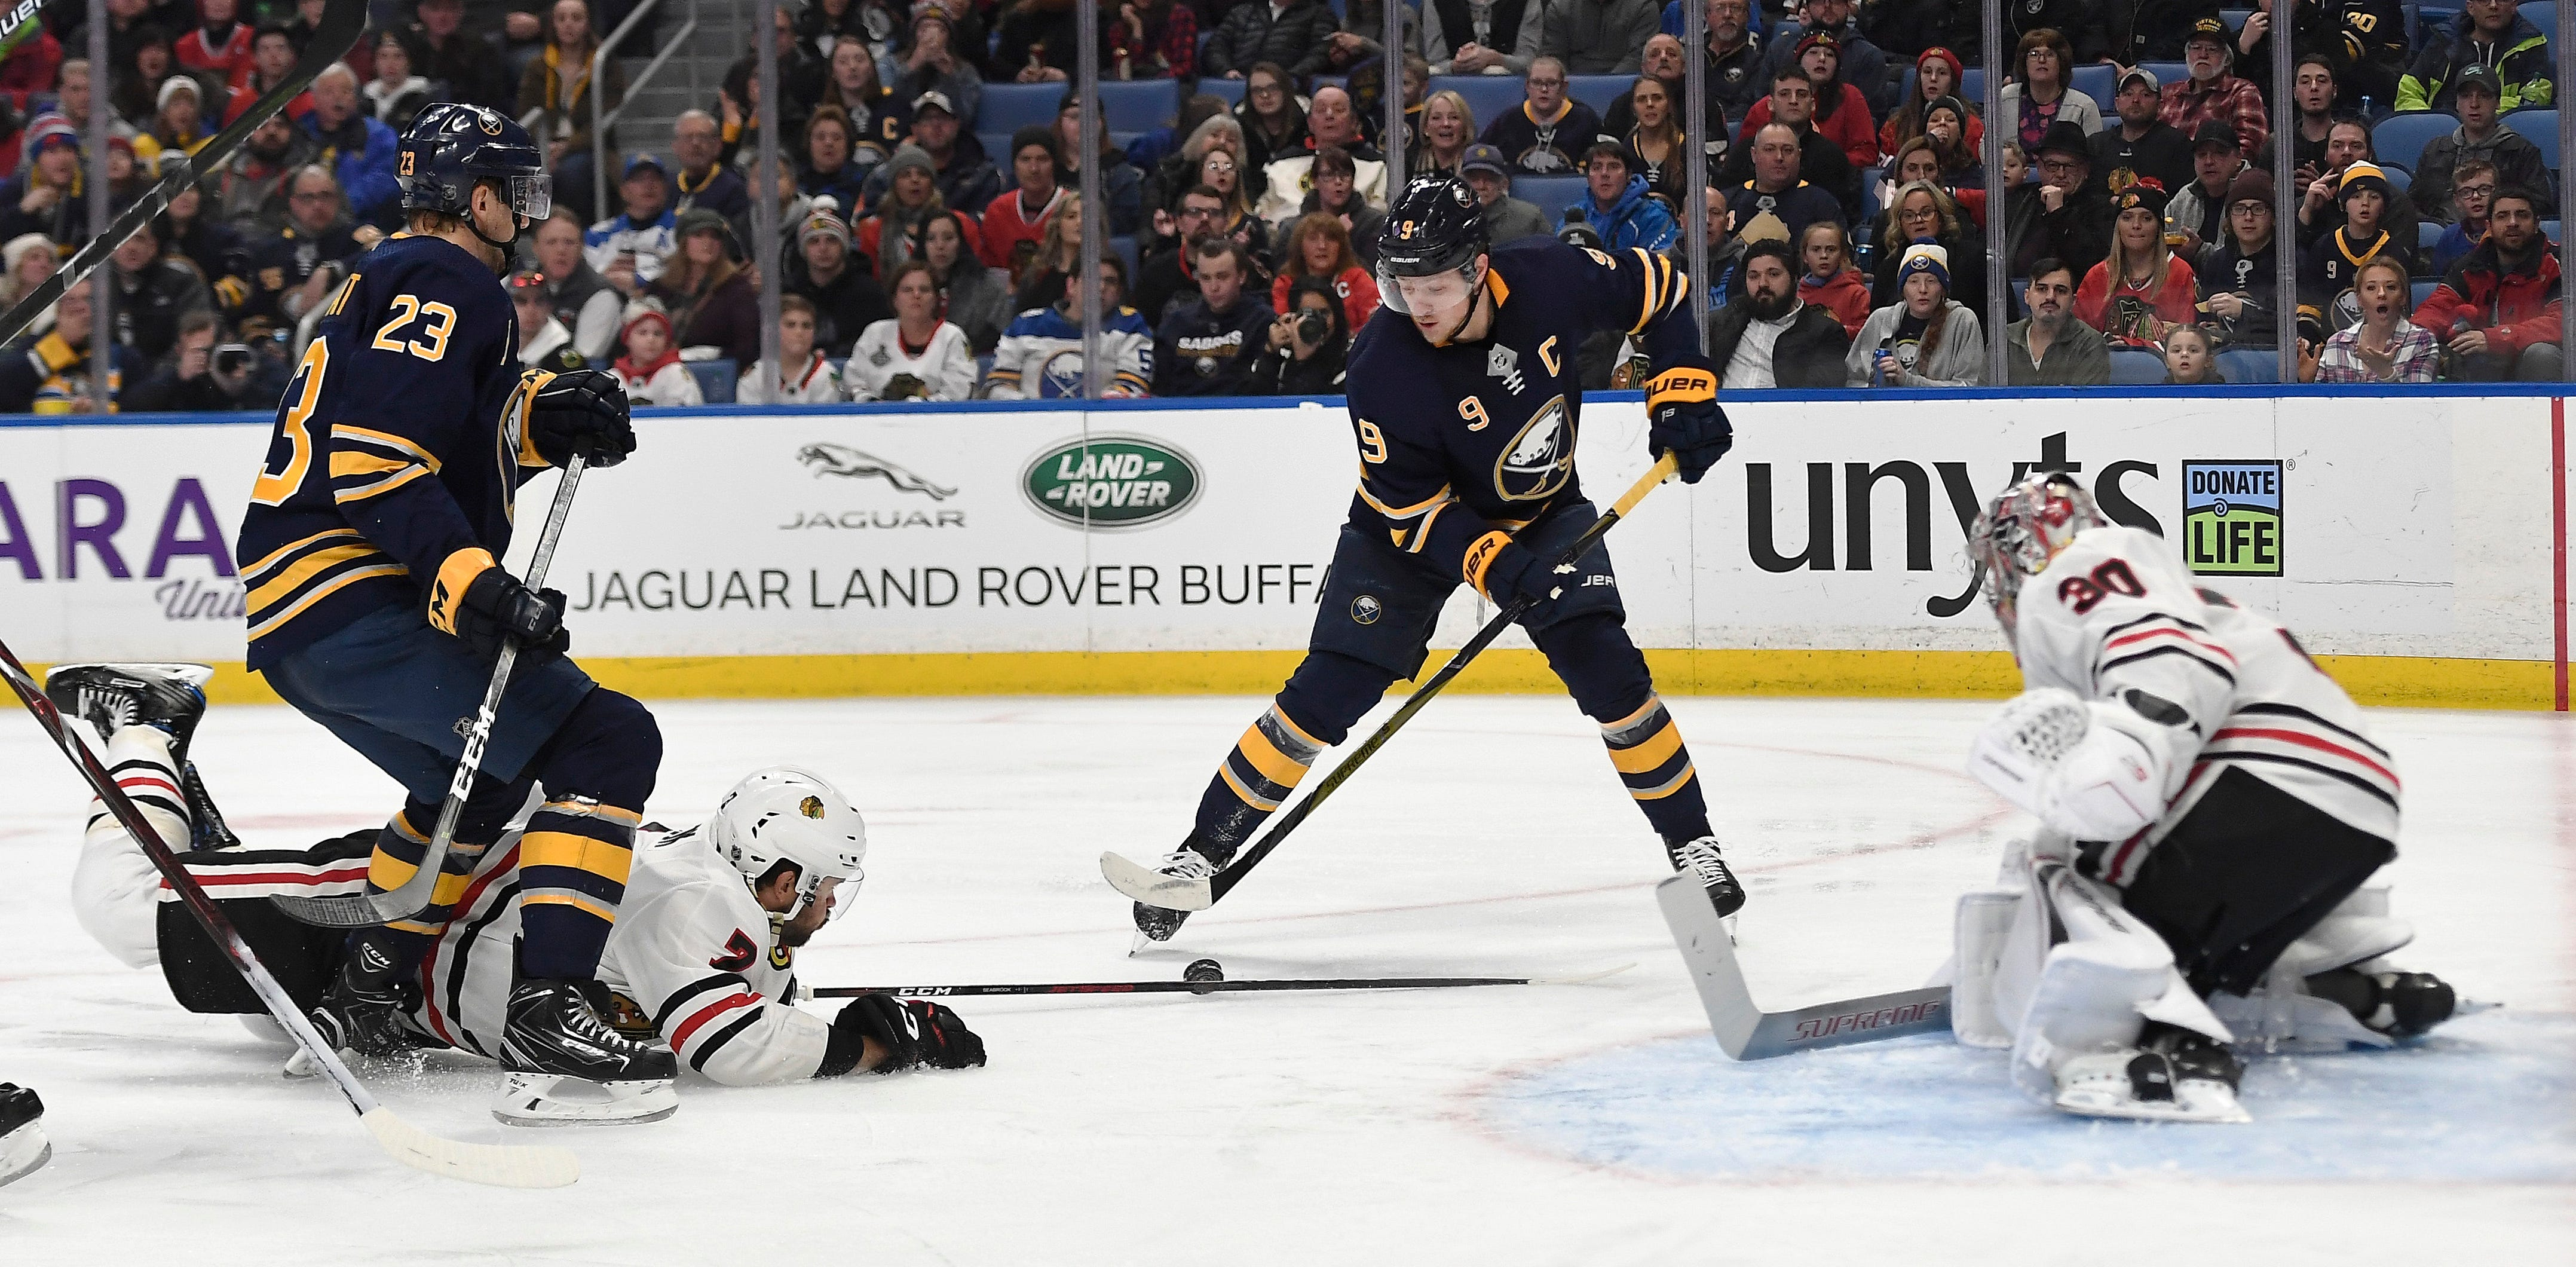 Patrick Kane leads Blackhawks in 7-3 rout of Sabres